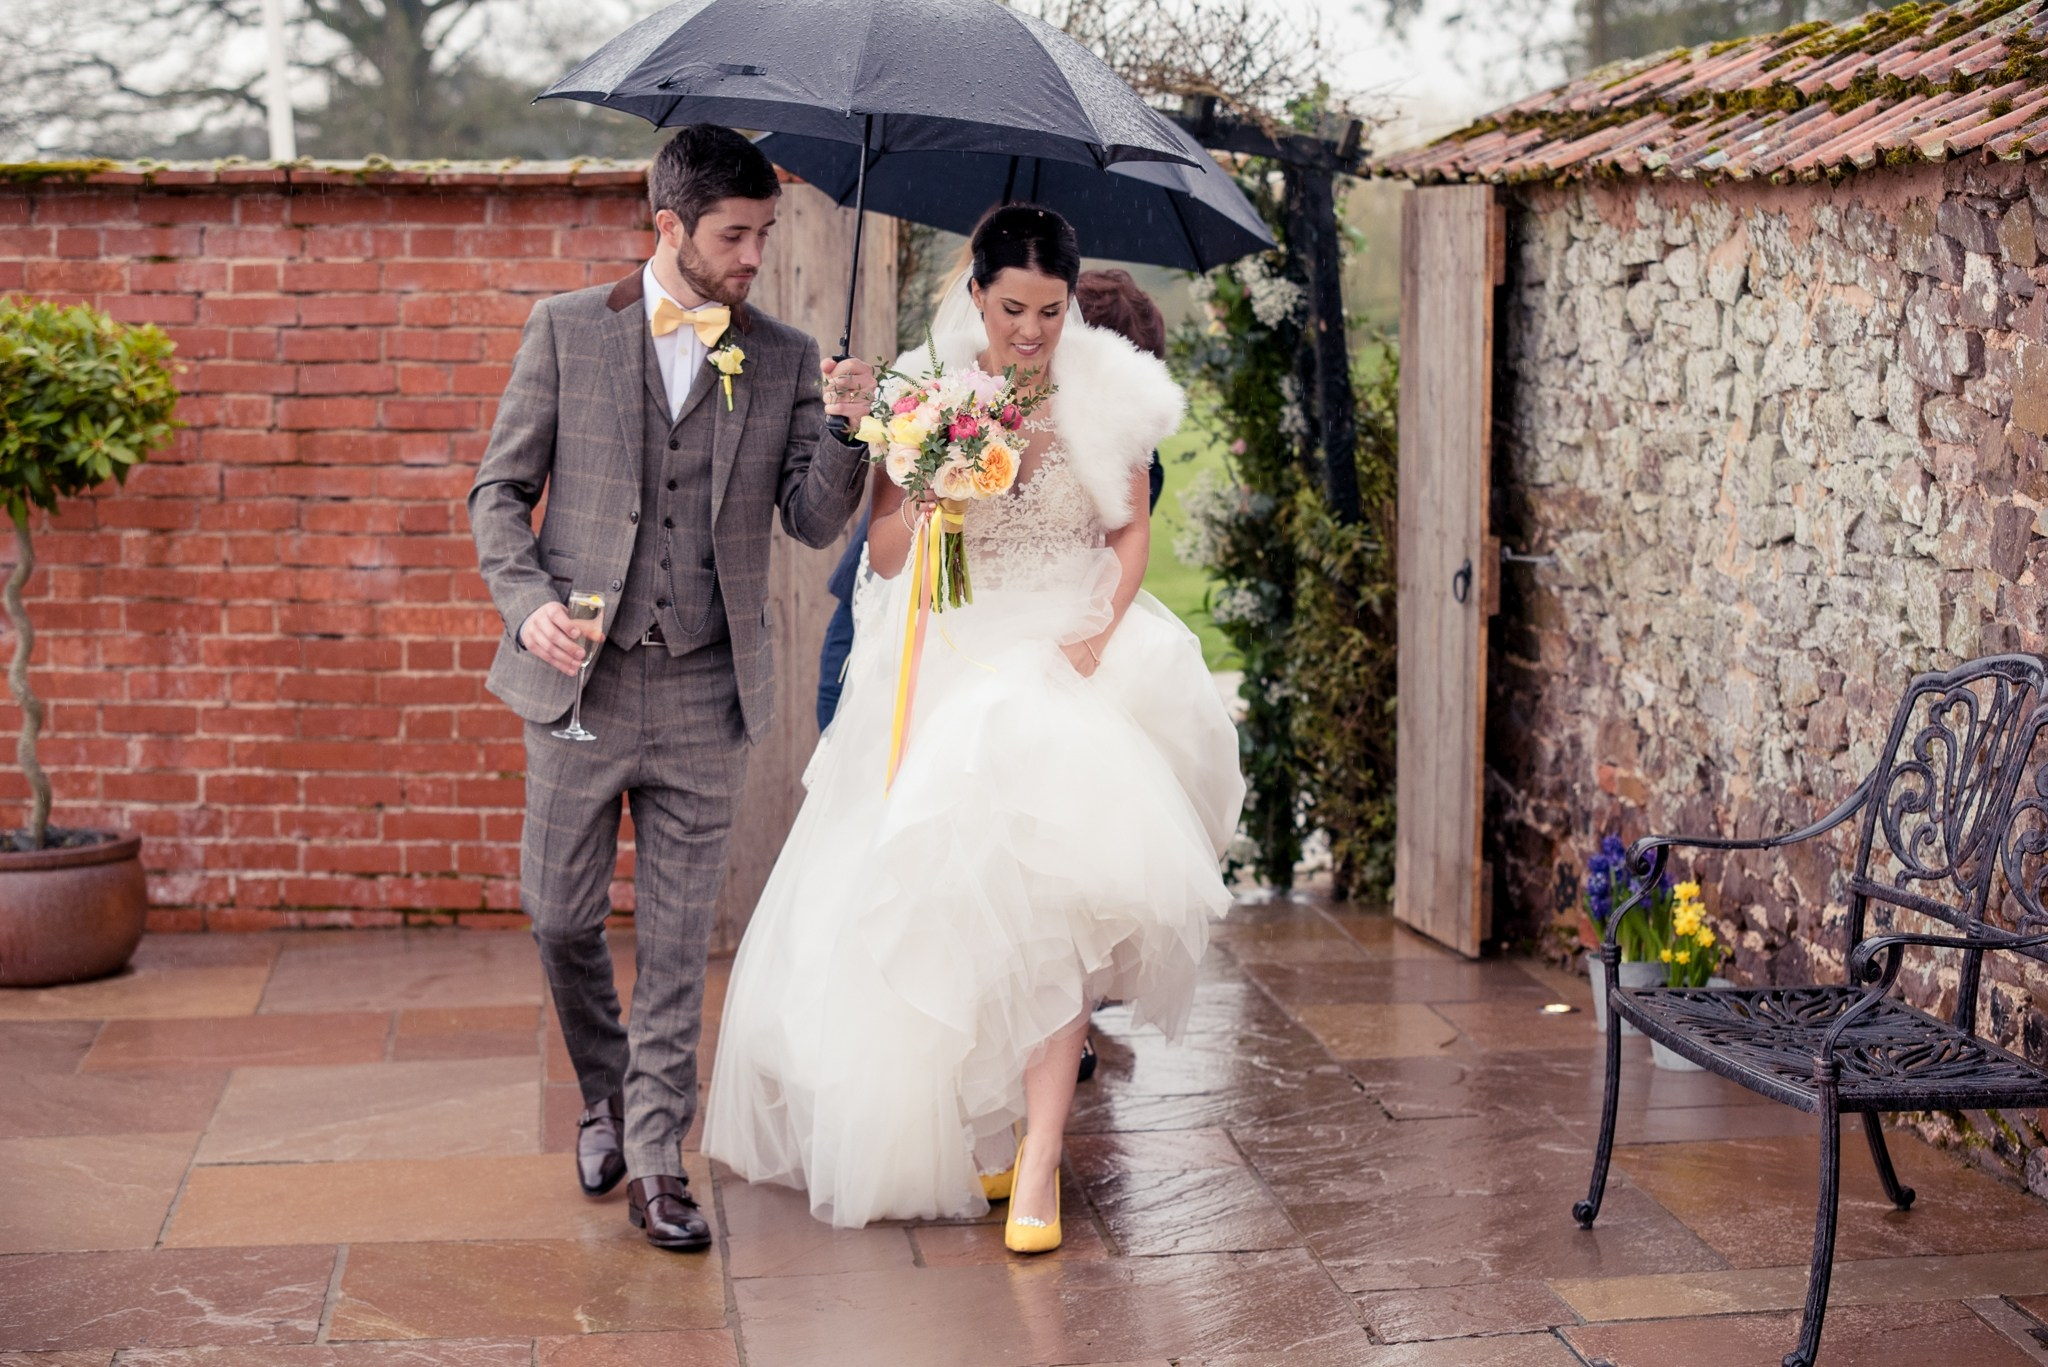 Bride and groom walk through the gate into the walled garden